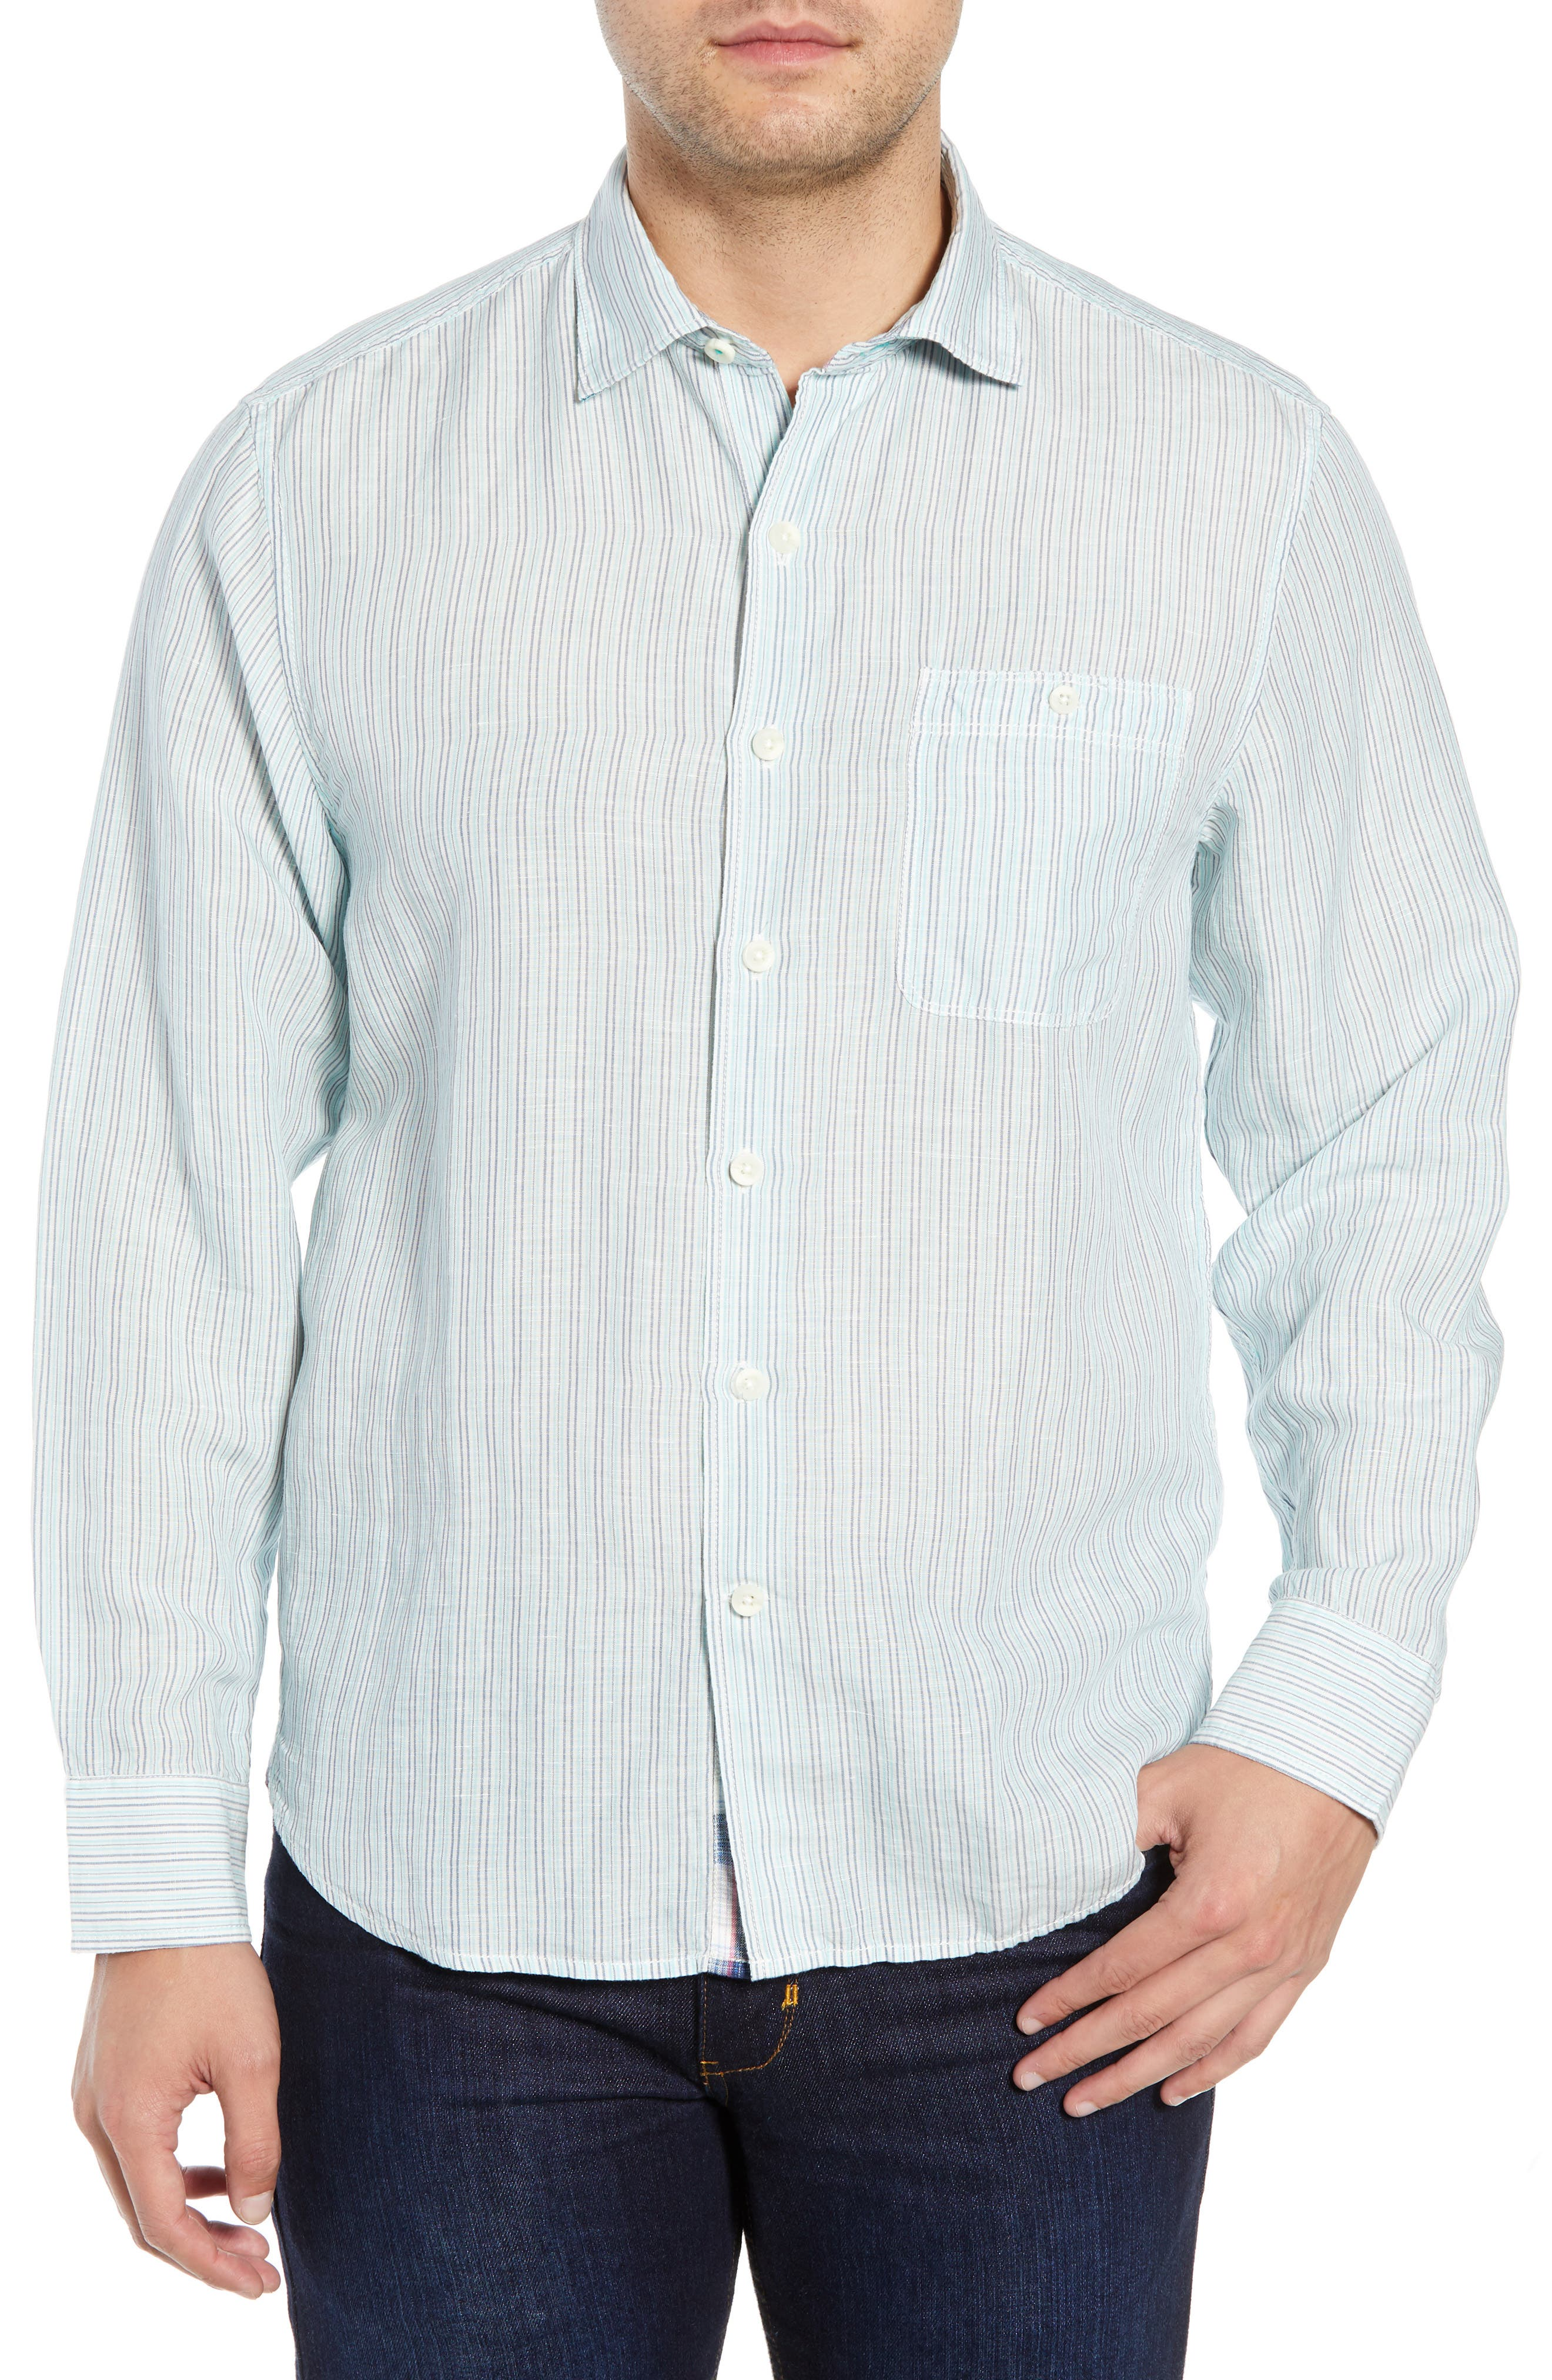 TOMMY BAHAMA, Sand Stripe Linen Blend Sport Shirt, Main thumbnail 1, color, BLUE SWELL